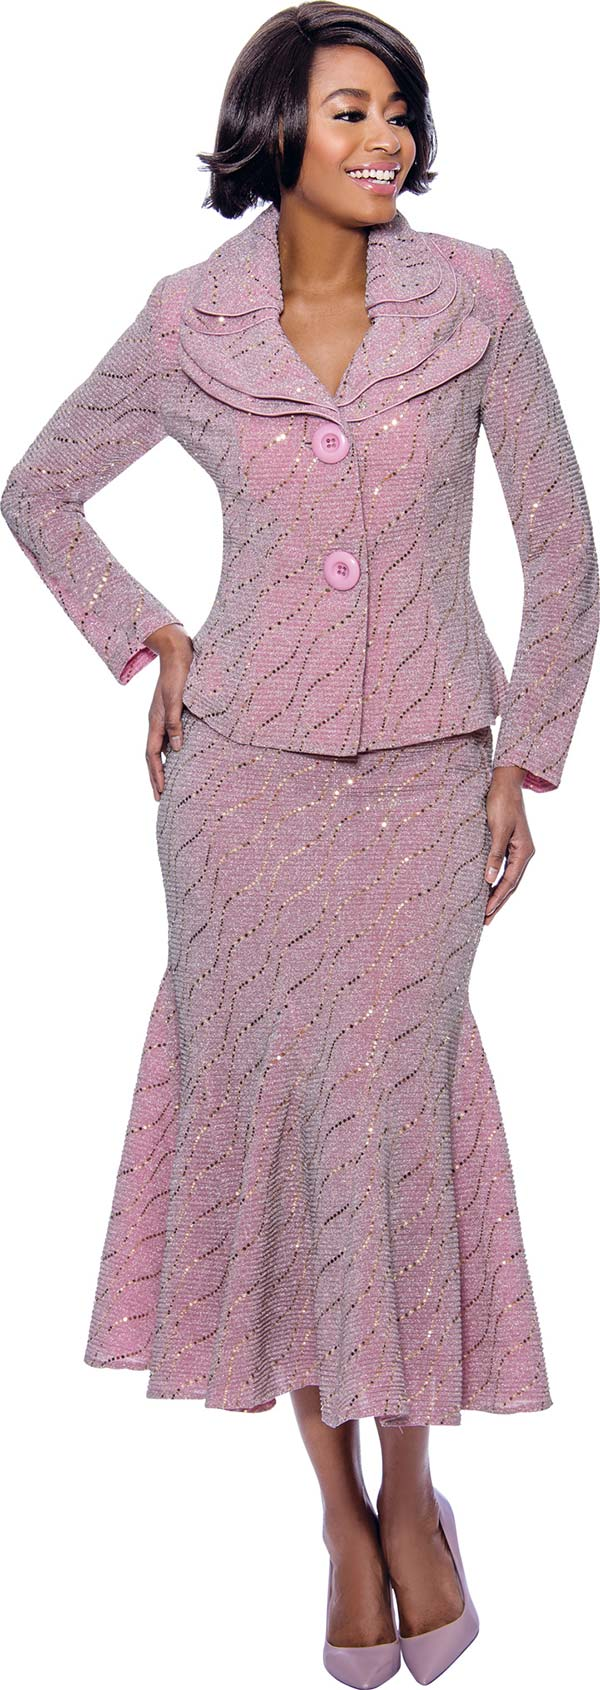 Terramina 7795-Rose - Embellished Flared Skirt Suit With Layered Collar And Two Button Jacket